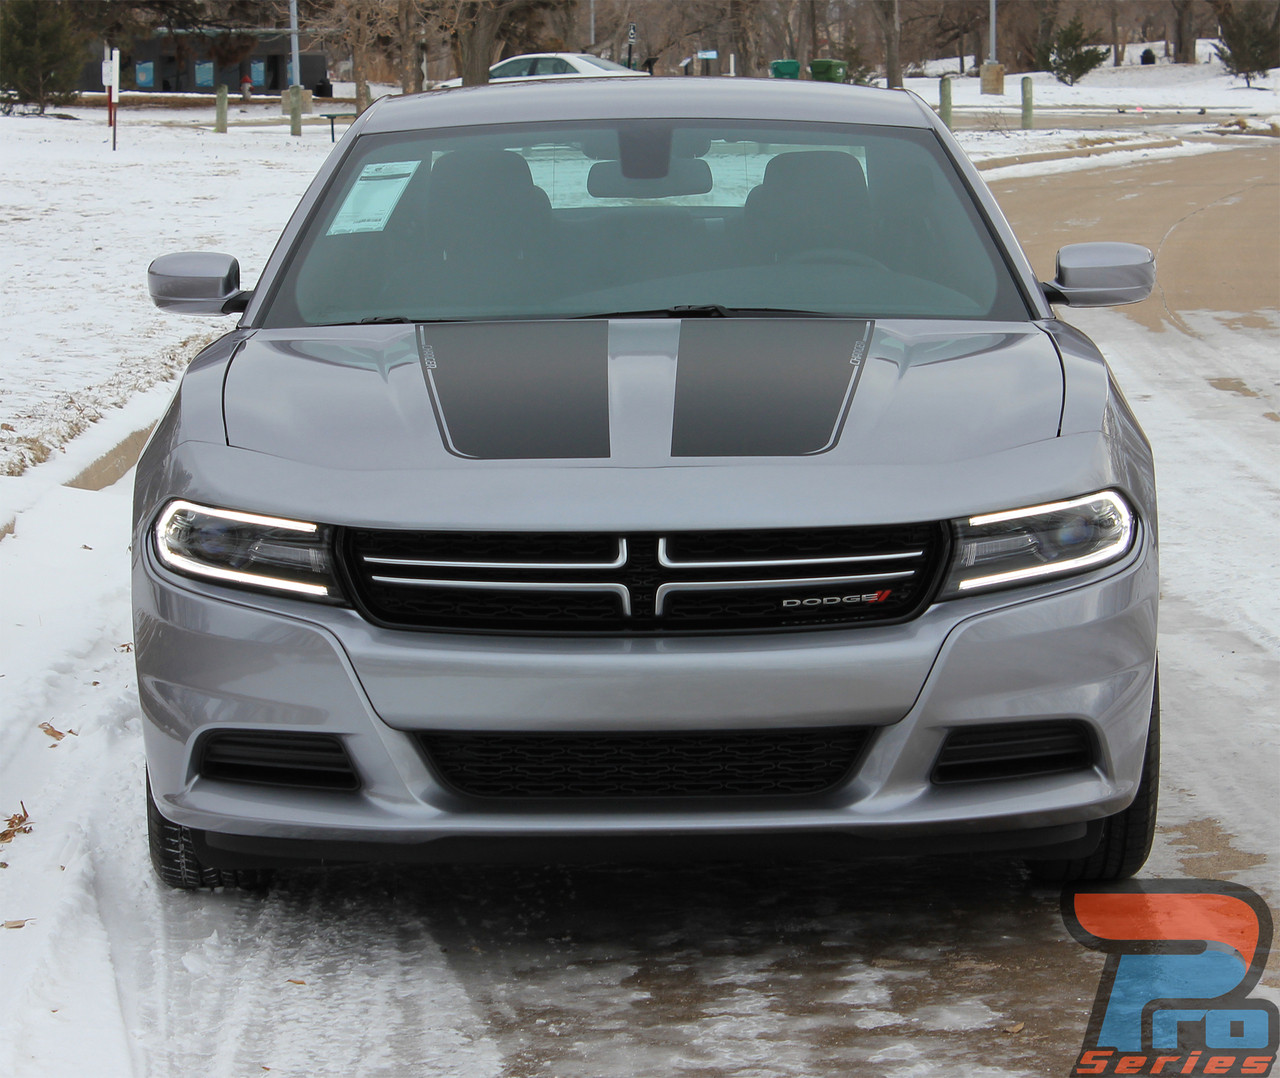 recharge 15 combo 2015 2016 2017 2018 dodge charger split hood and rear quarter panel